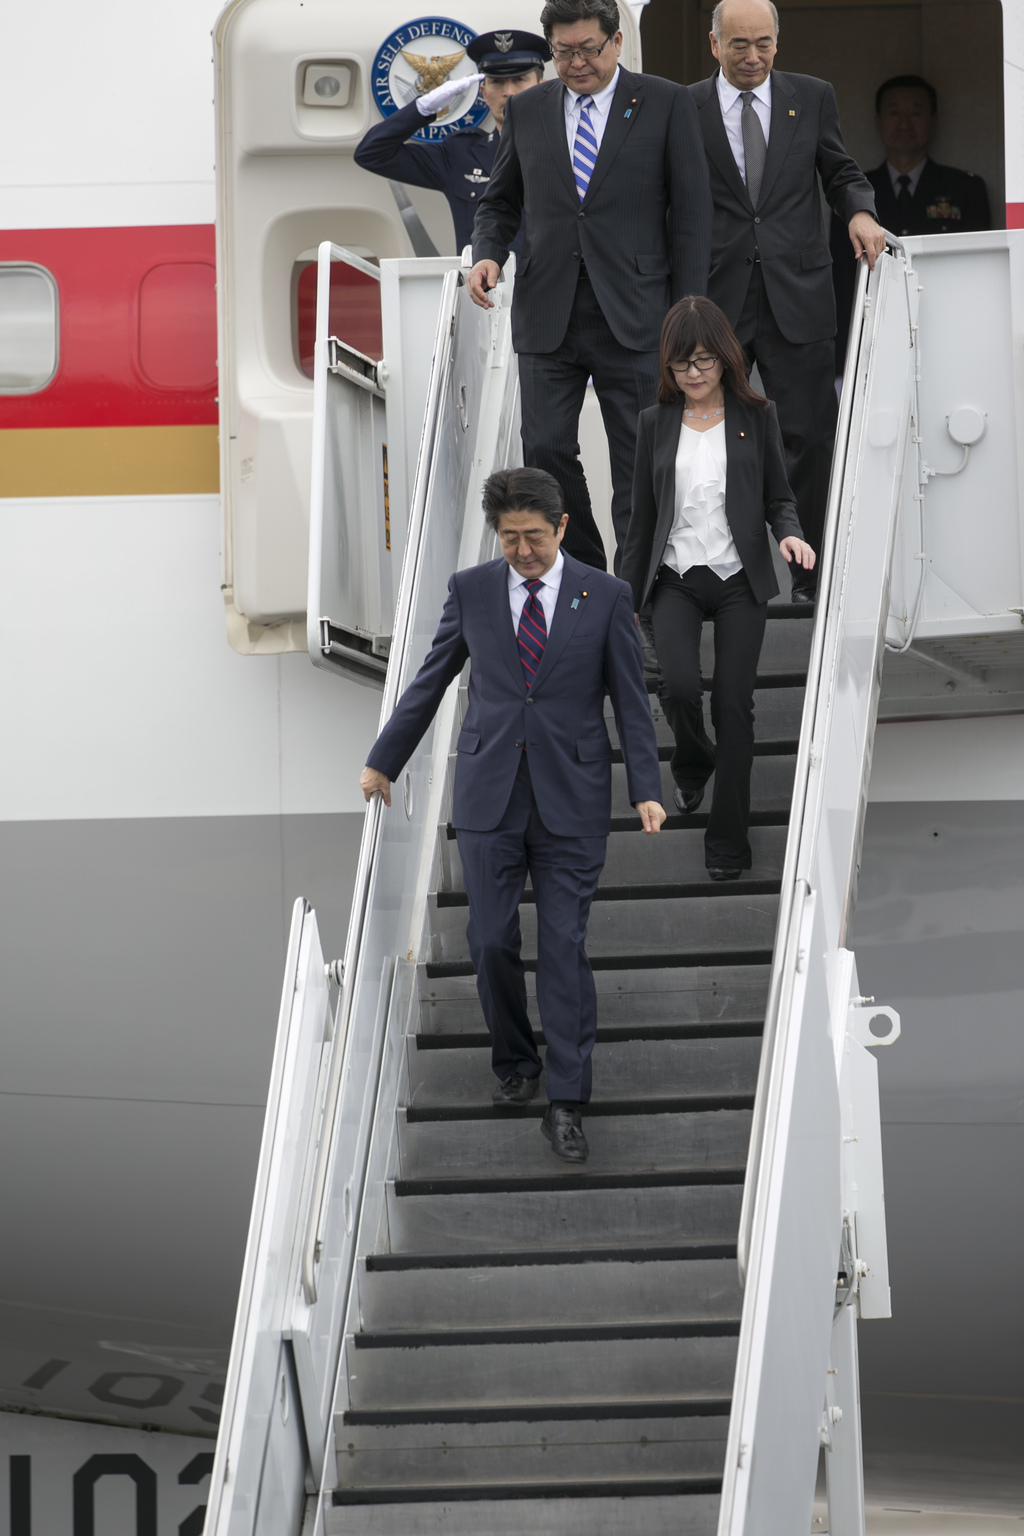 Japan's Prime Minister Shinzo Abe arrives at Joint Base Pearl Harbor Hickam, Monday, Dec. 26, 2016, in Honolulu. Abe will visit Pearl H...